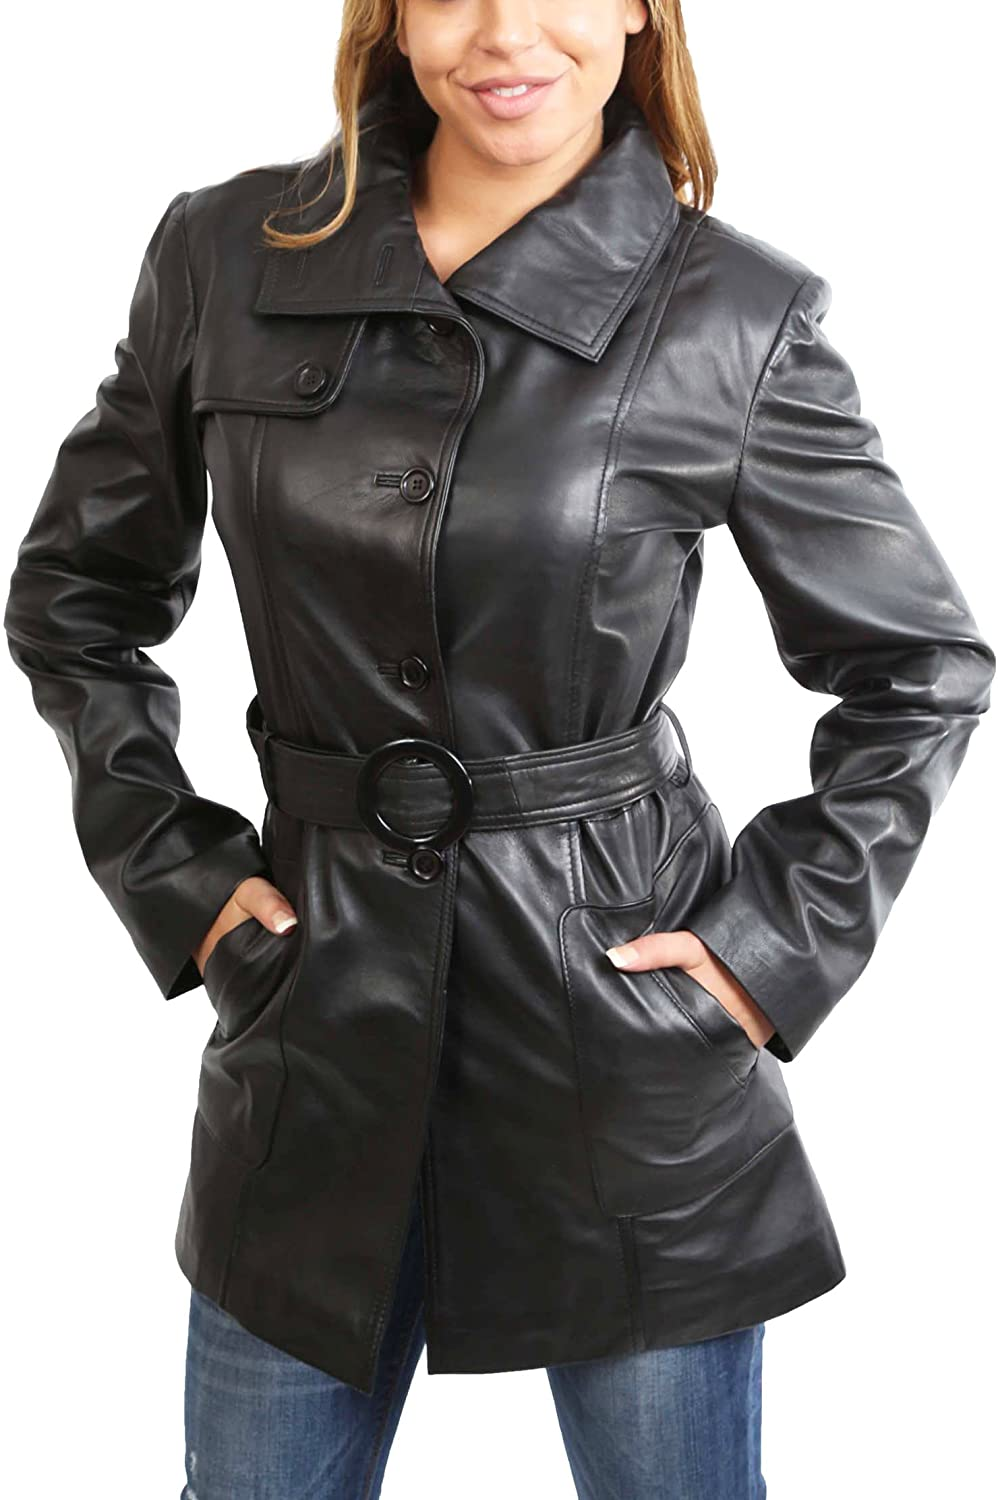 A1 FASHION GOODS Womens Real Leather Black Trench Coat Waist Belt Mid Length Parka Jacket - Alba